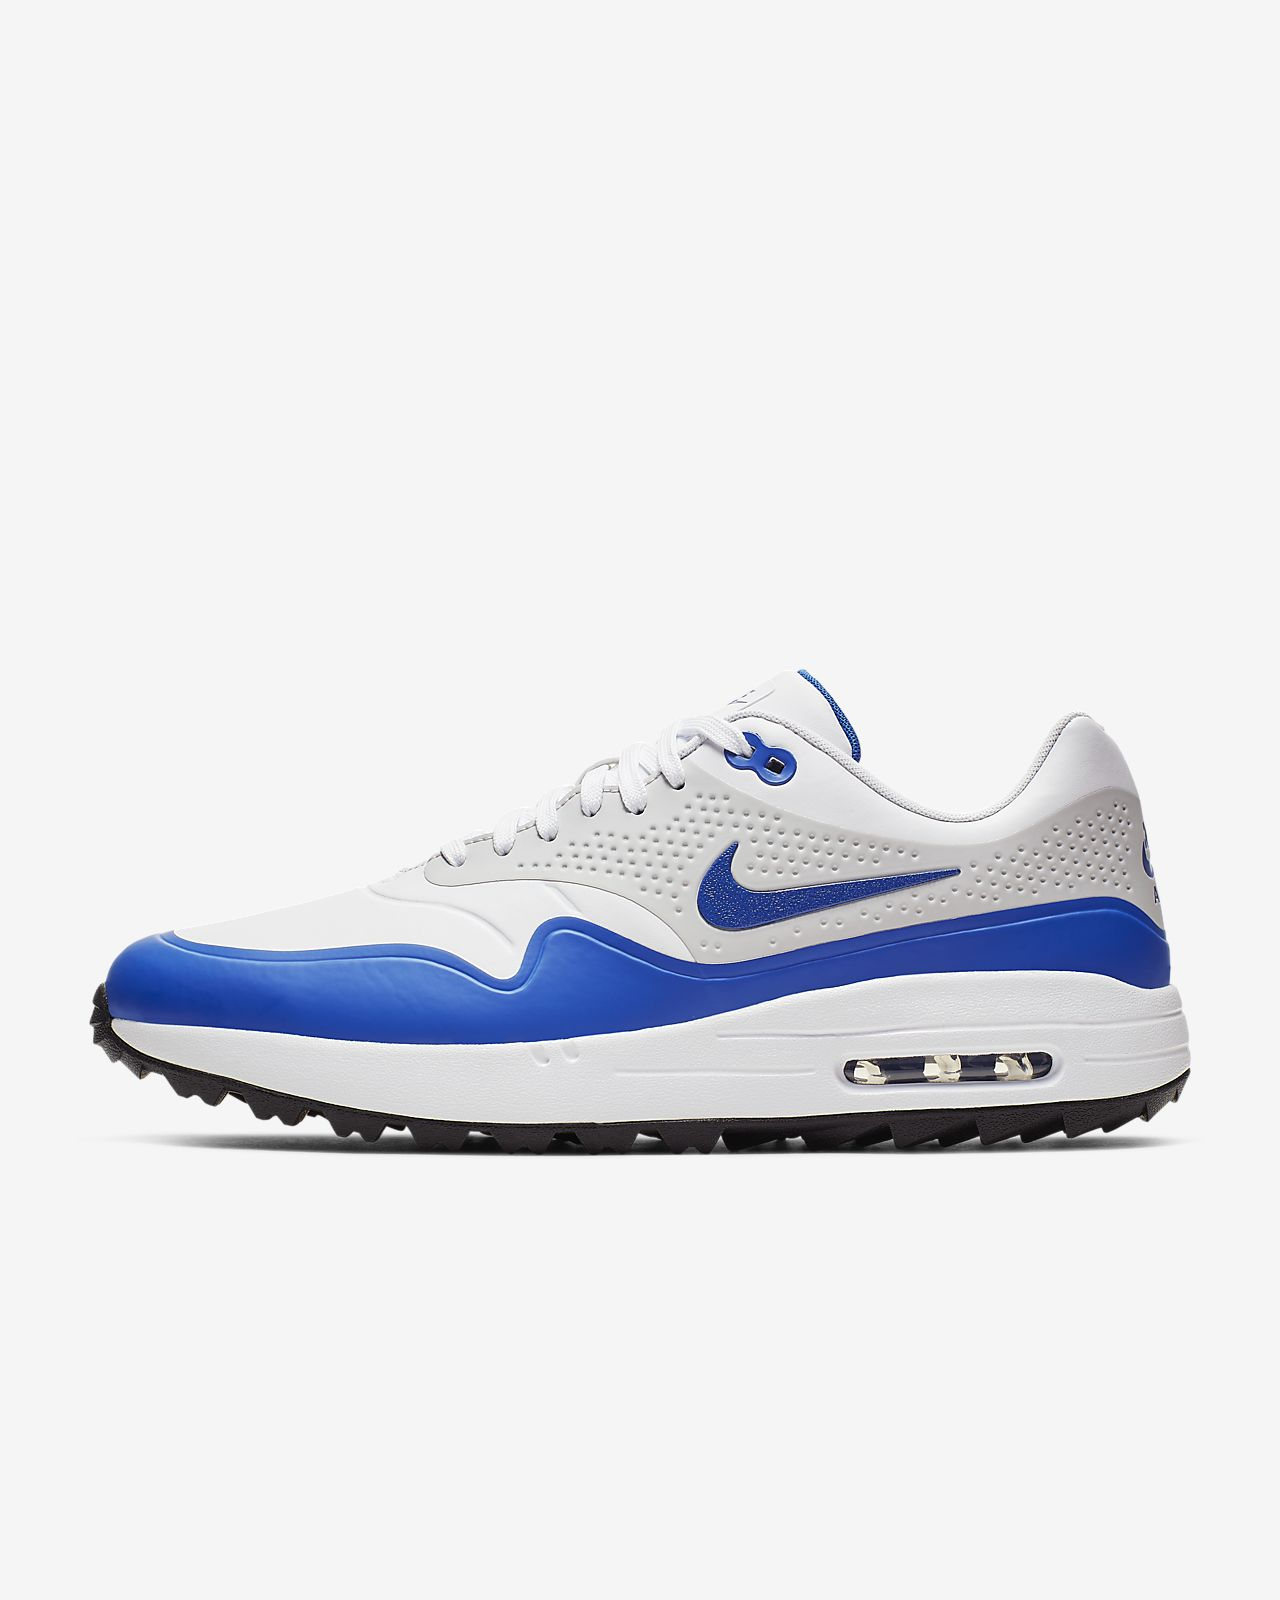 a8dc4f33f3 Nike Air Max 1 G Men's Golf Shoe. Nike.com